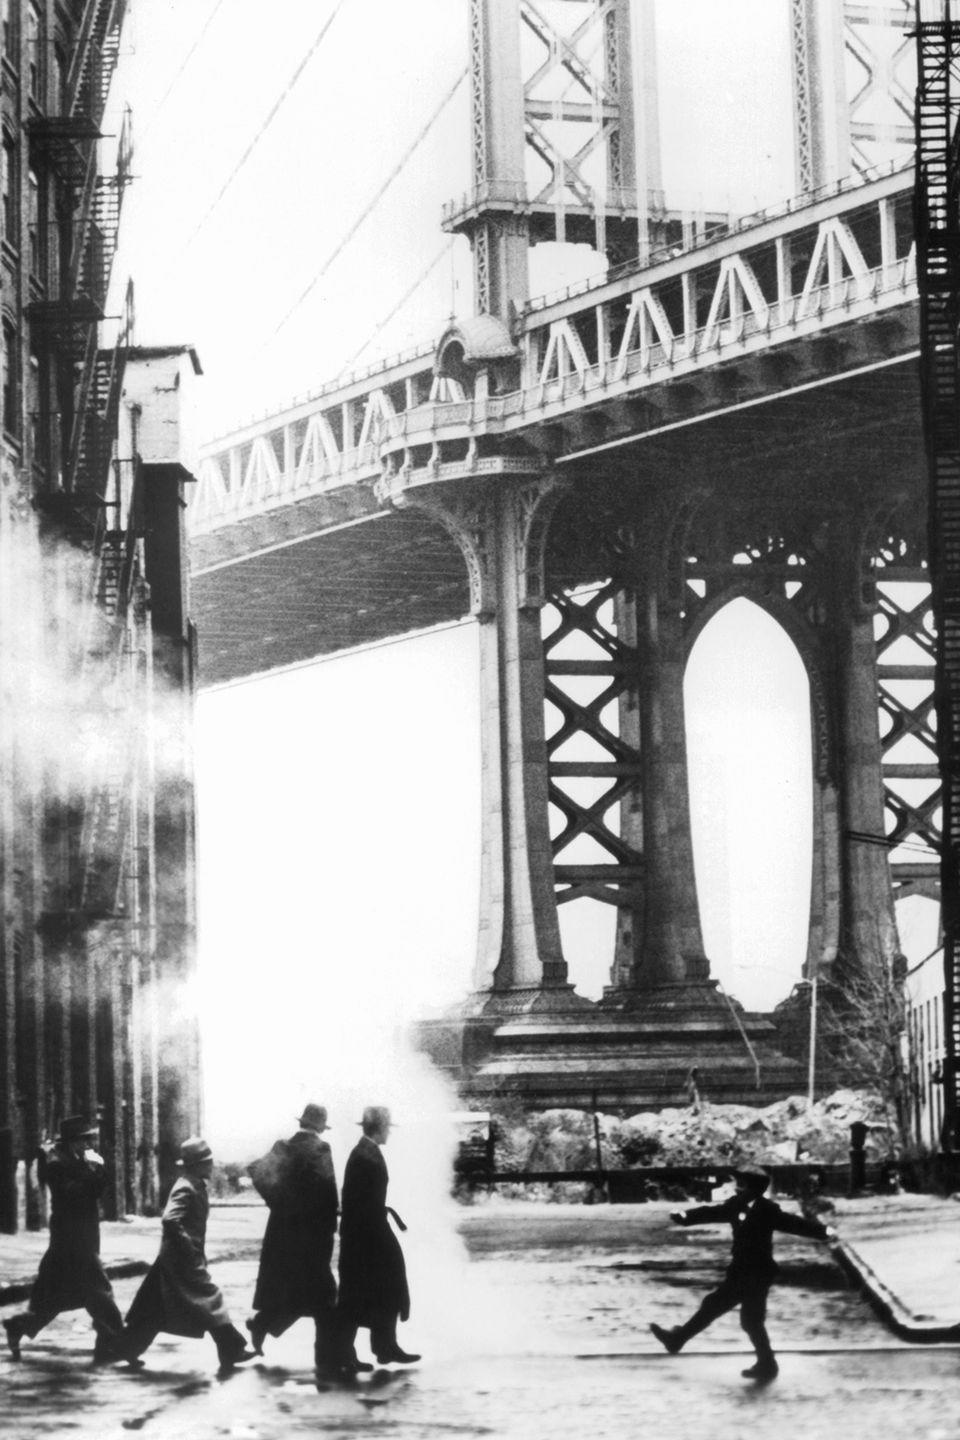 "<p>The Williamsburg Bridge rises high above New York's streets in a scene from the film <em><a href=""https://www.amazon.com/Once-Upon-Time-America-Pesci/dp/B001EC2J2U?tag=syn-yahoo-20&ascsubtag=%5Bartid%7C10052.g.21054733%5Bsrc%7Cyahoo-us"" rel=""nofollow noopener"" target=""_blank"" data-ylk=""slk:Once Upon A Time In America"" class=""link rapid-noclick-resp"">Once Upon A Time In America</a>.</em></p>"